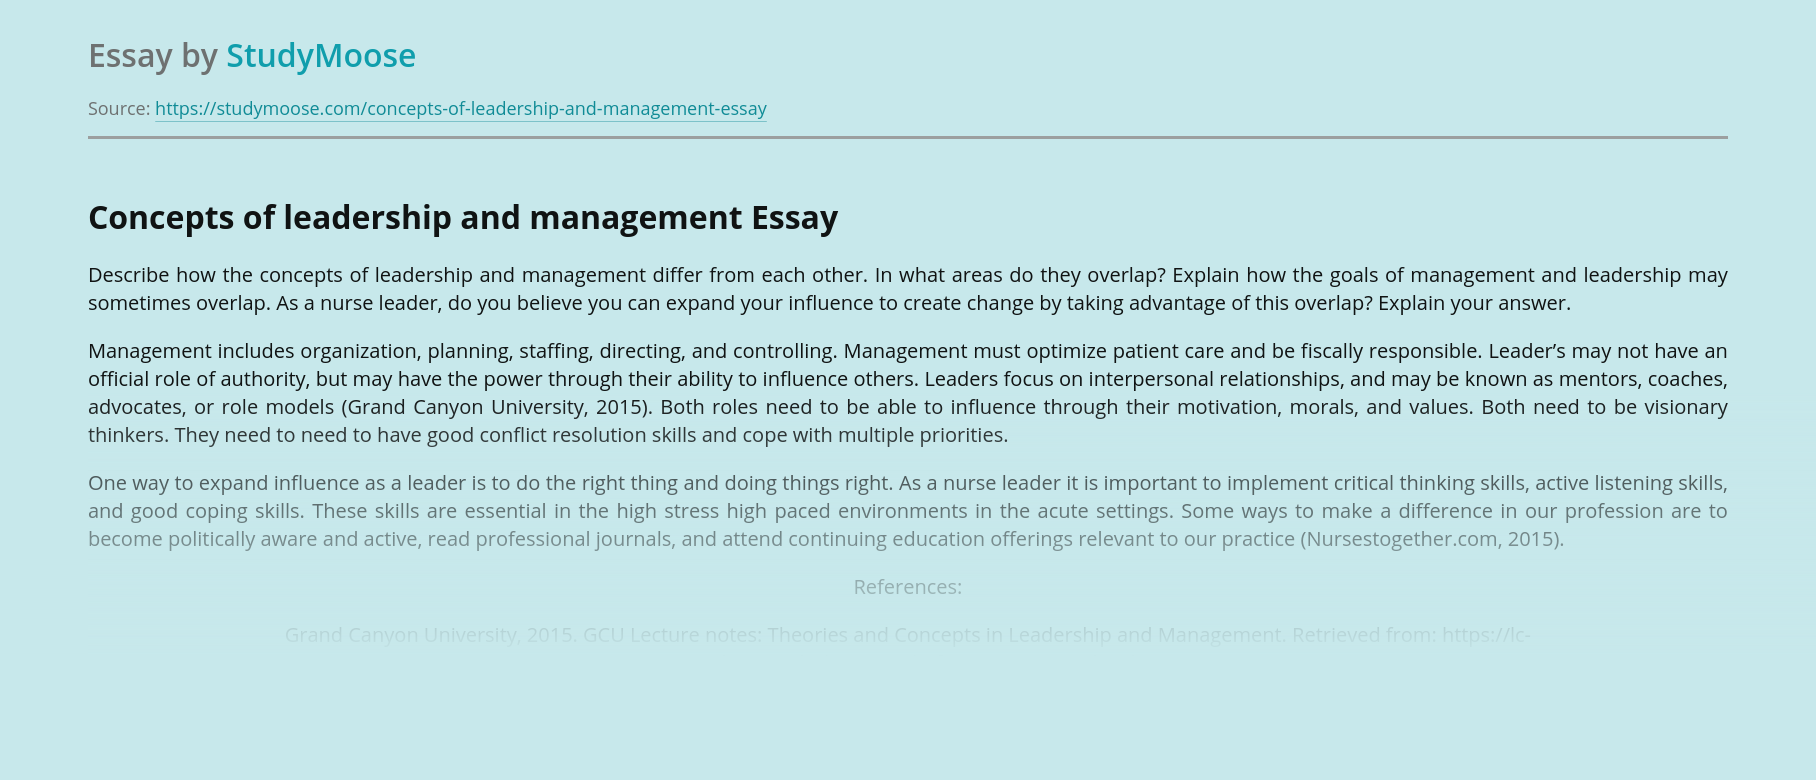 Concepts of leadership and management